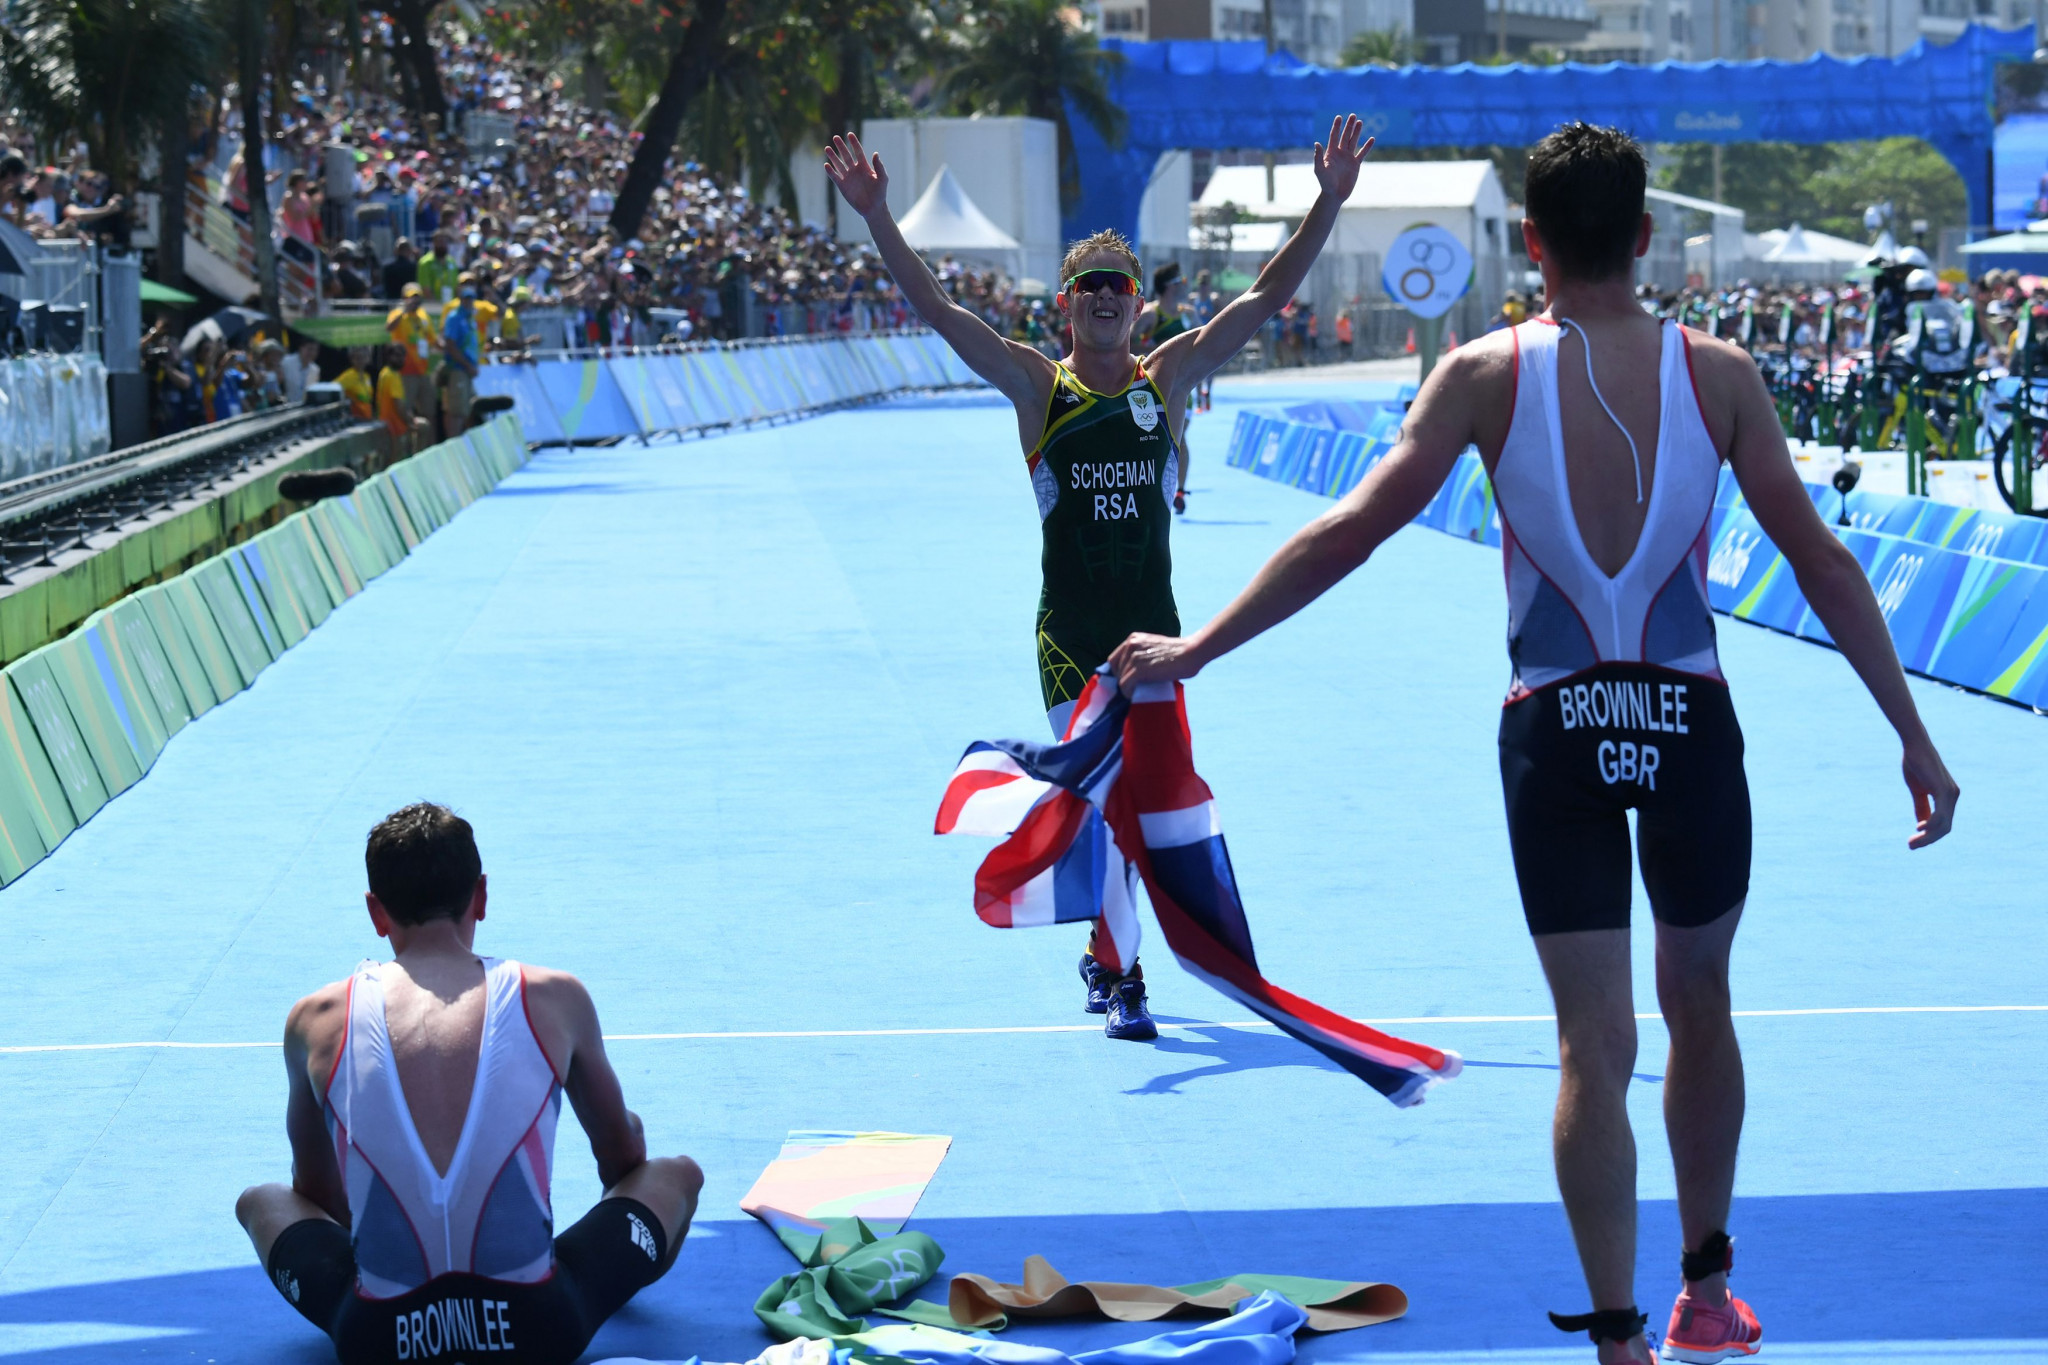 Henri Schoeman crosses the line in third place at Rio 2016 ©Getty Images